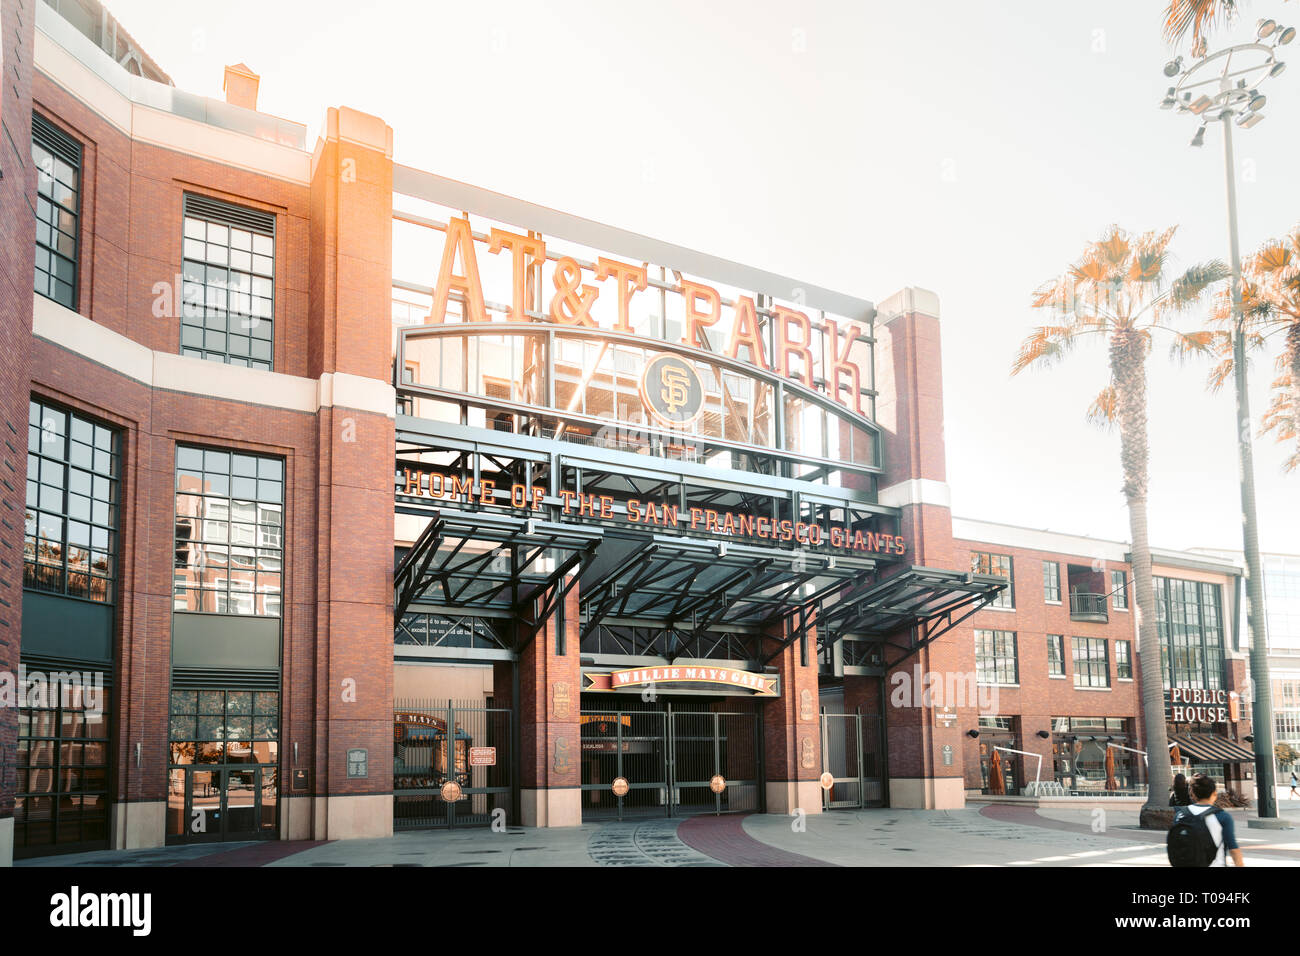 Panorama view of historic AT&T Park baseball park, home of the San Francisco Giants professional baseball franchise, on a beautiful sunny day with blu - Stock Image